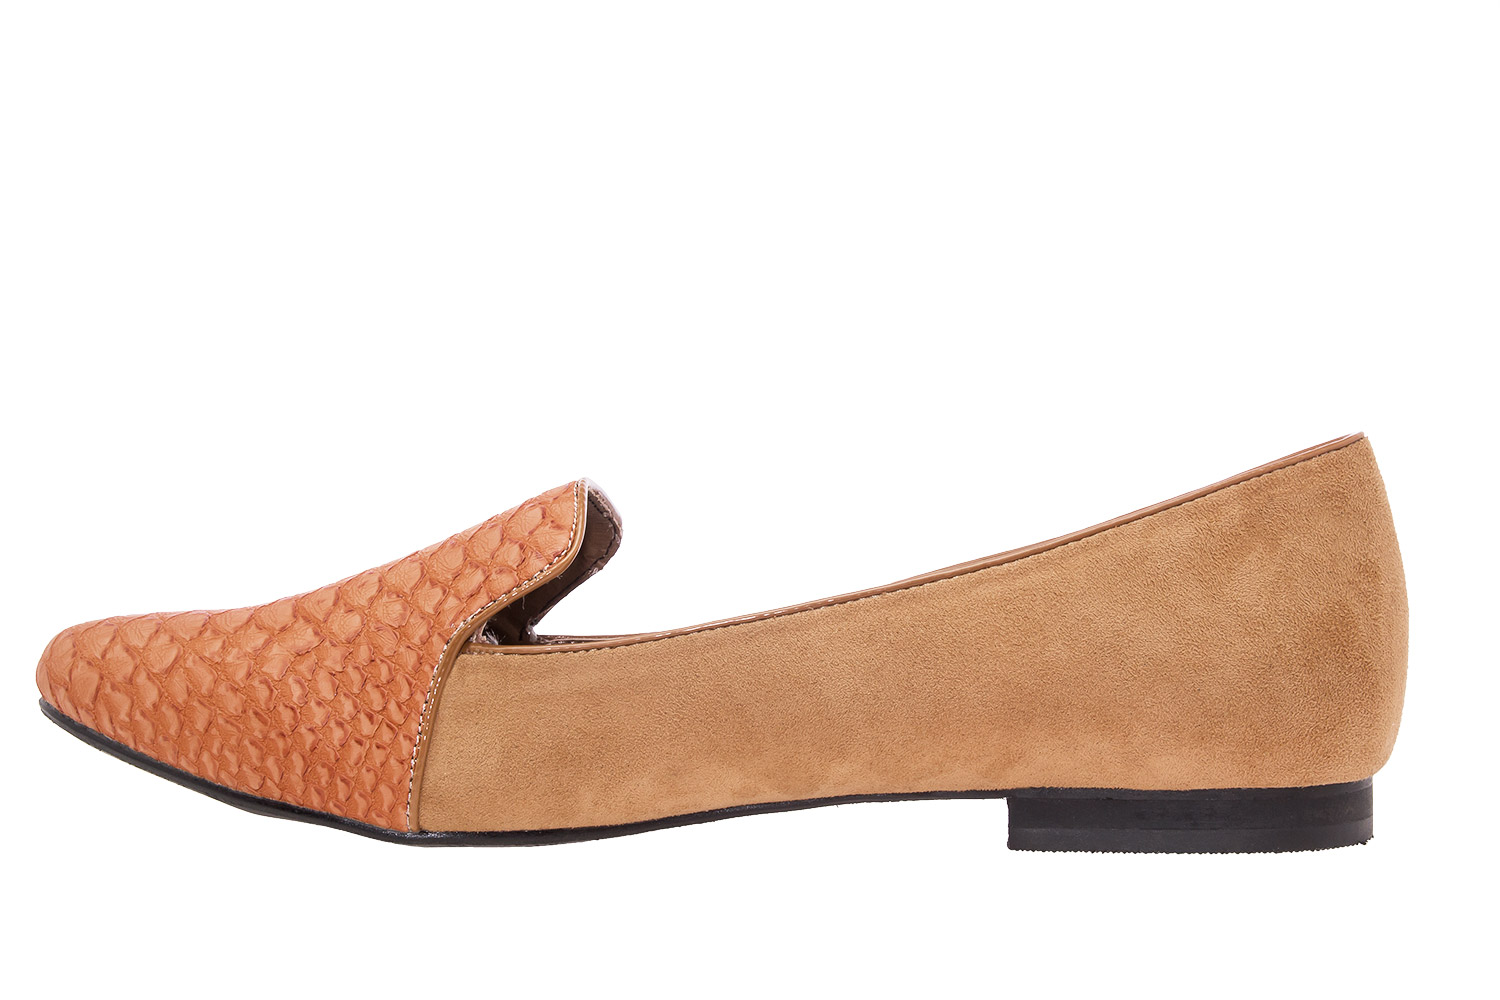 Slipper Serpiente Camel